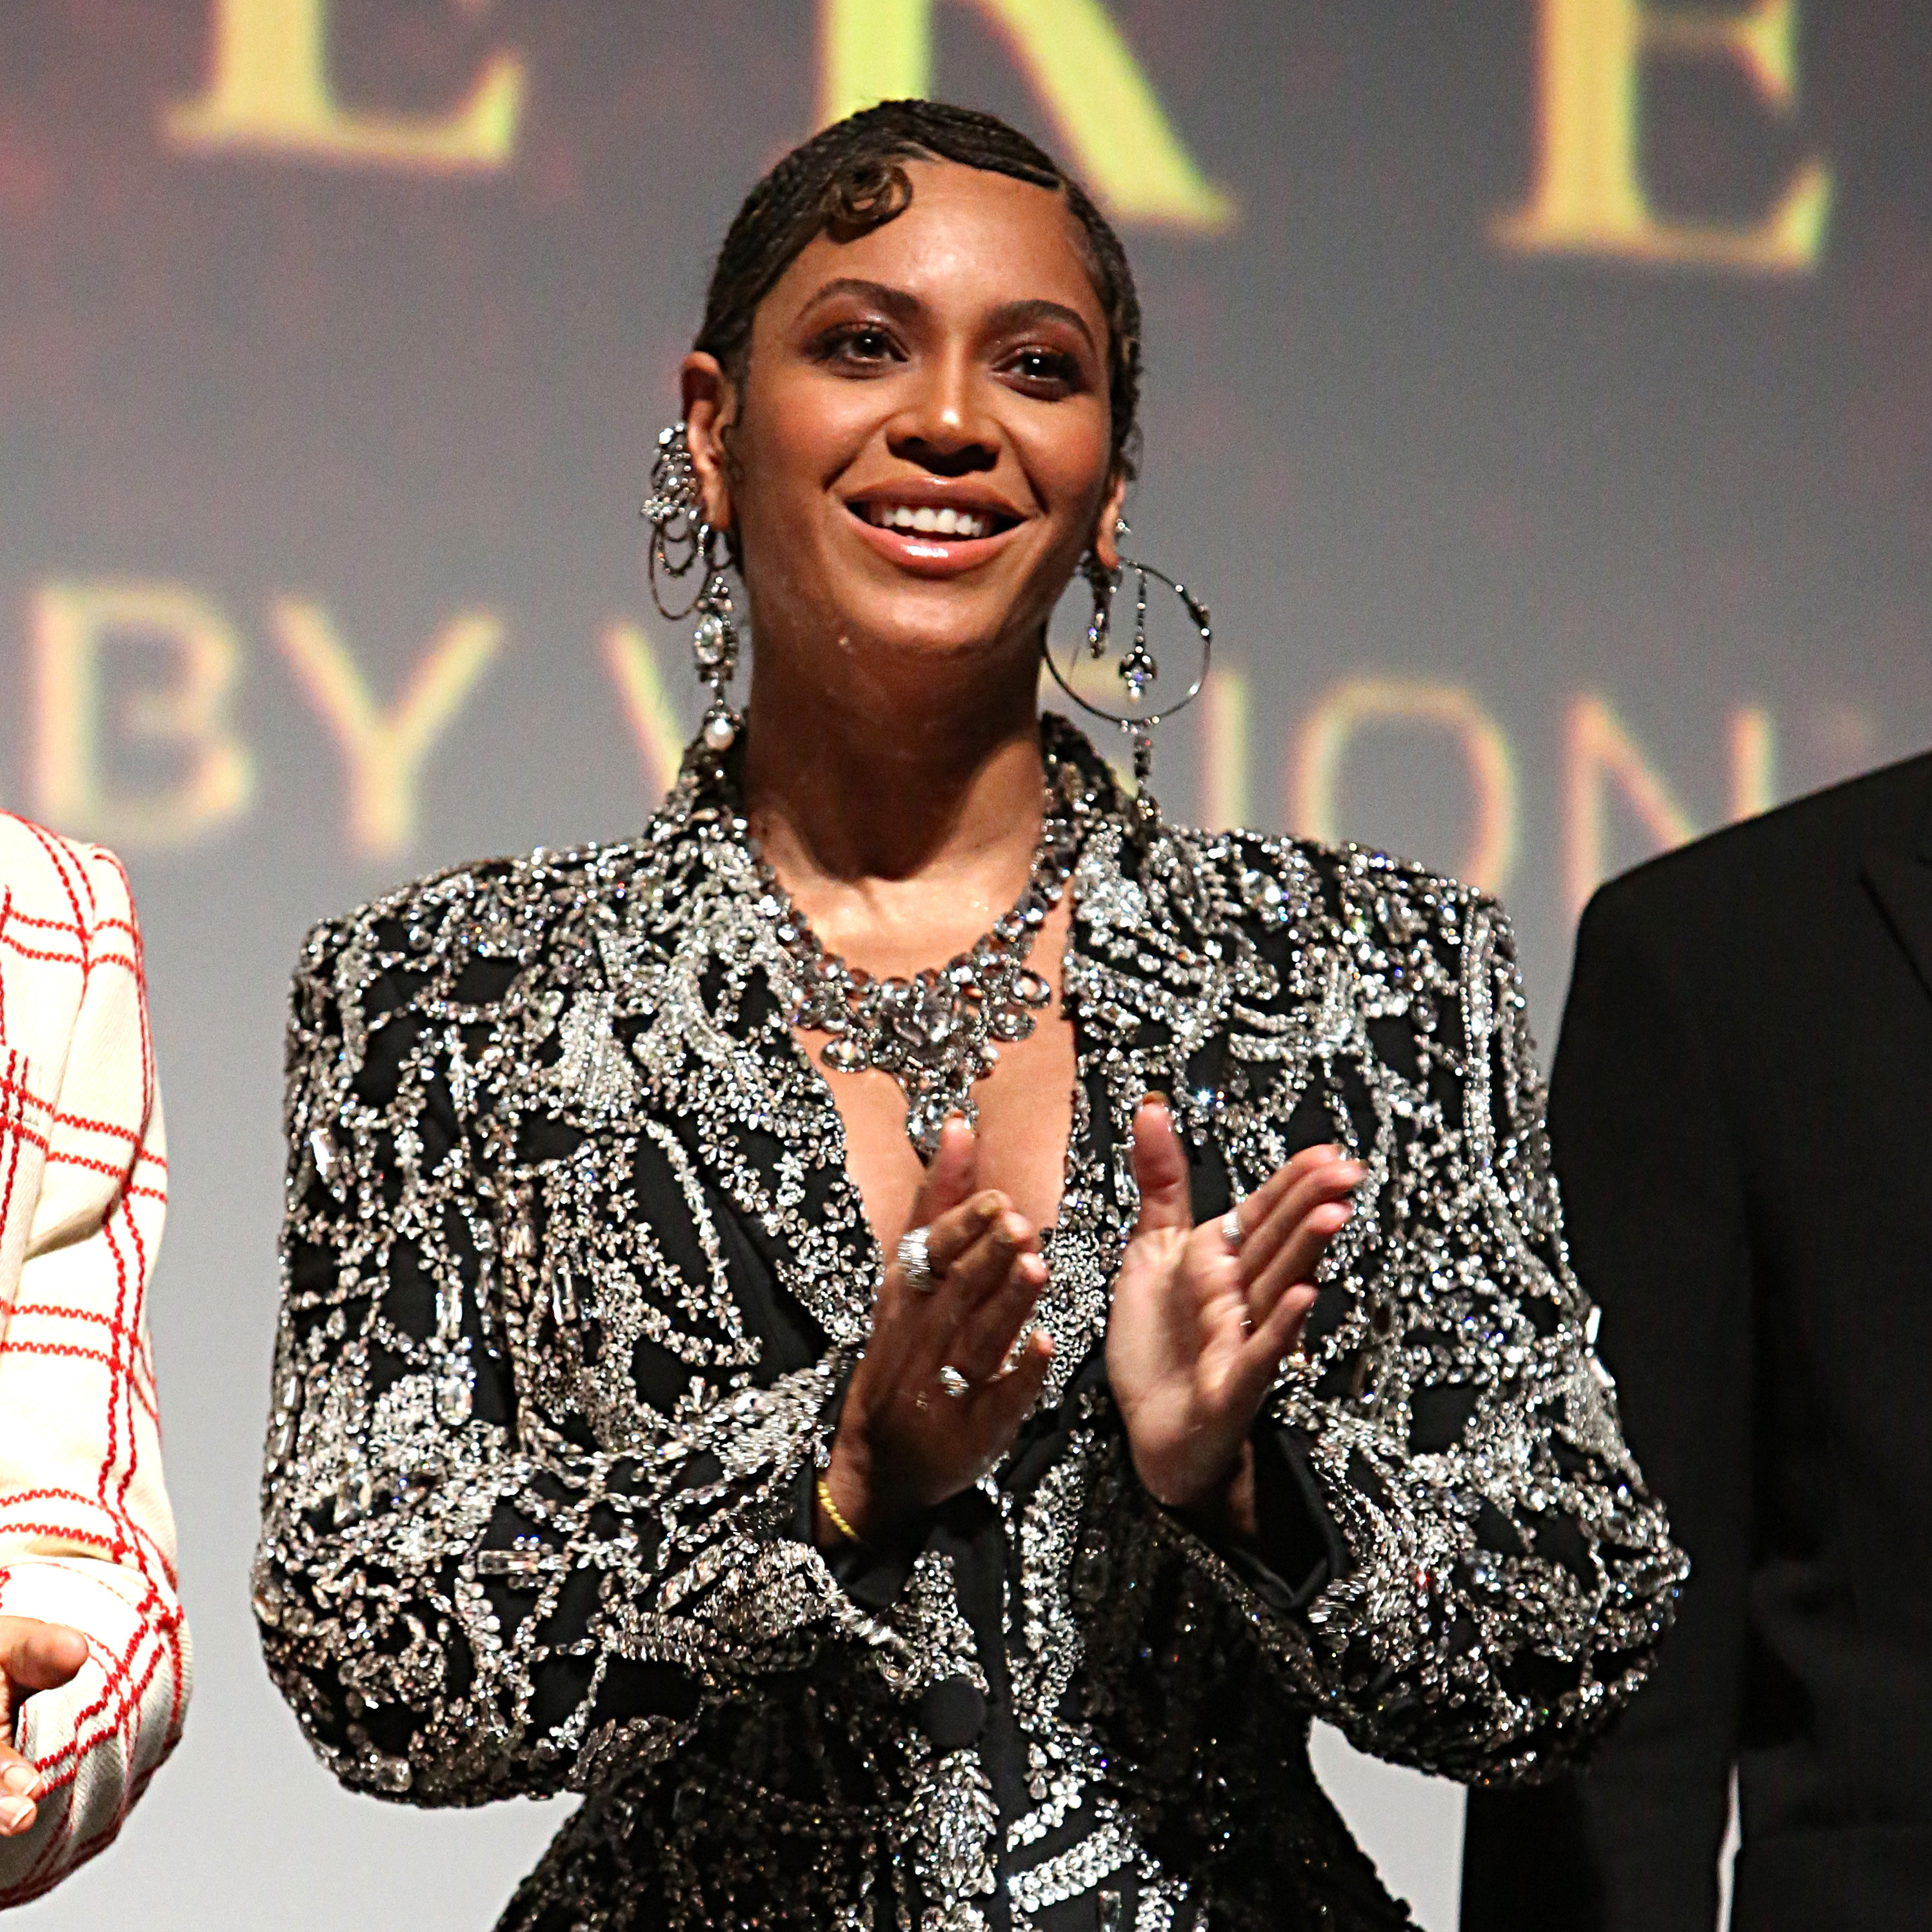 Beyoncé claps onstage during the world premiere of Disney's The Lion King in Los Angeles in 2019